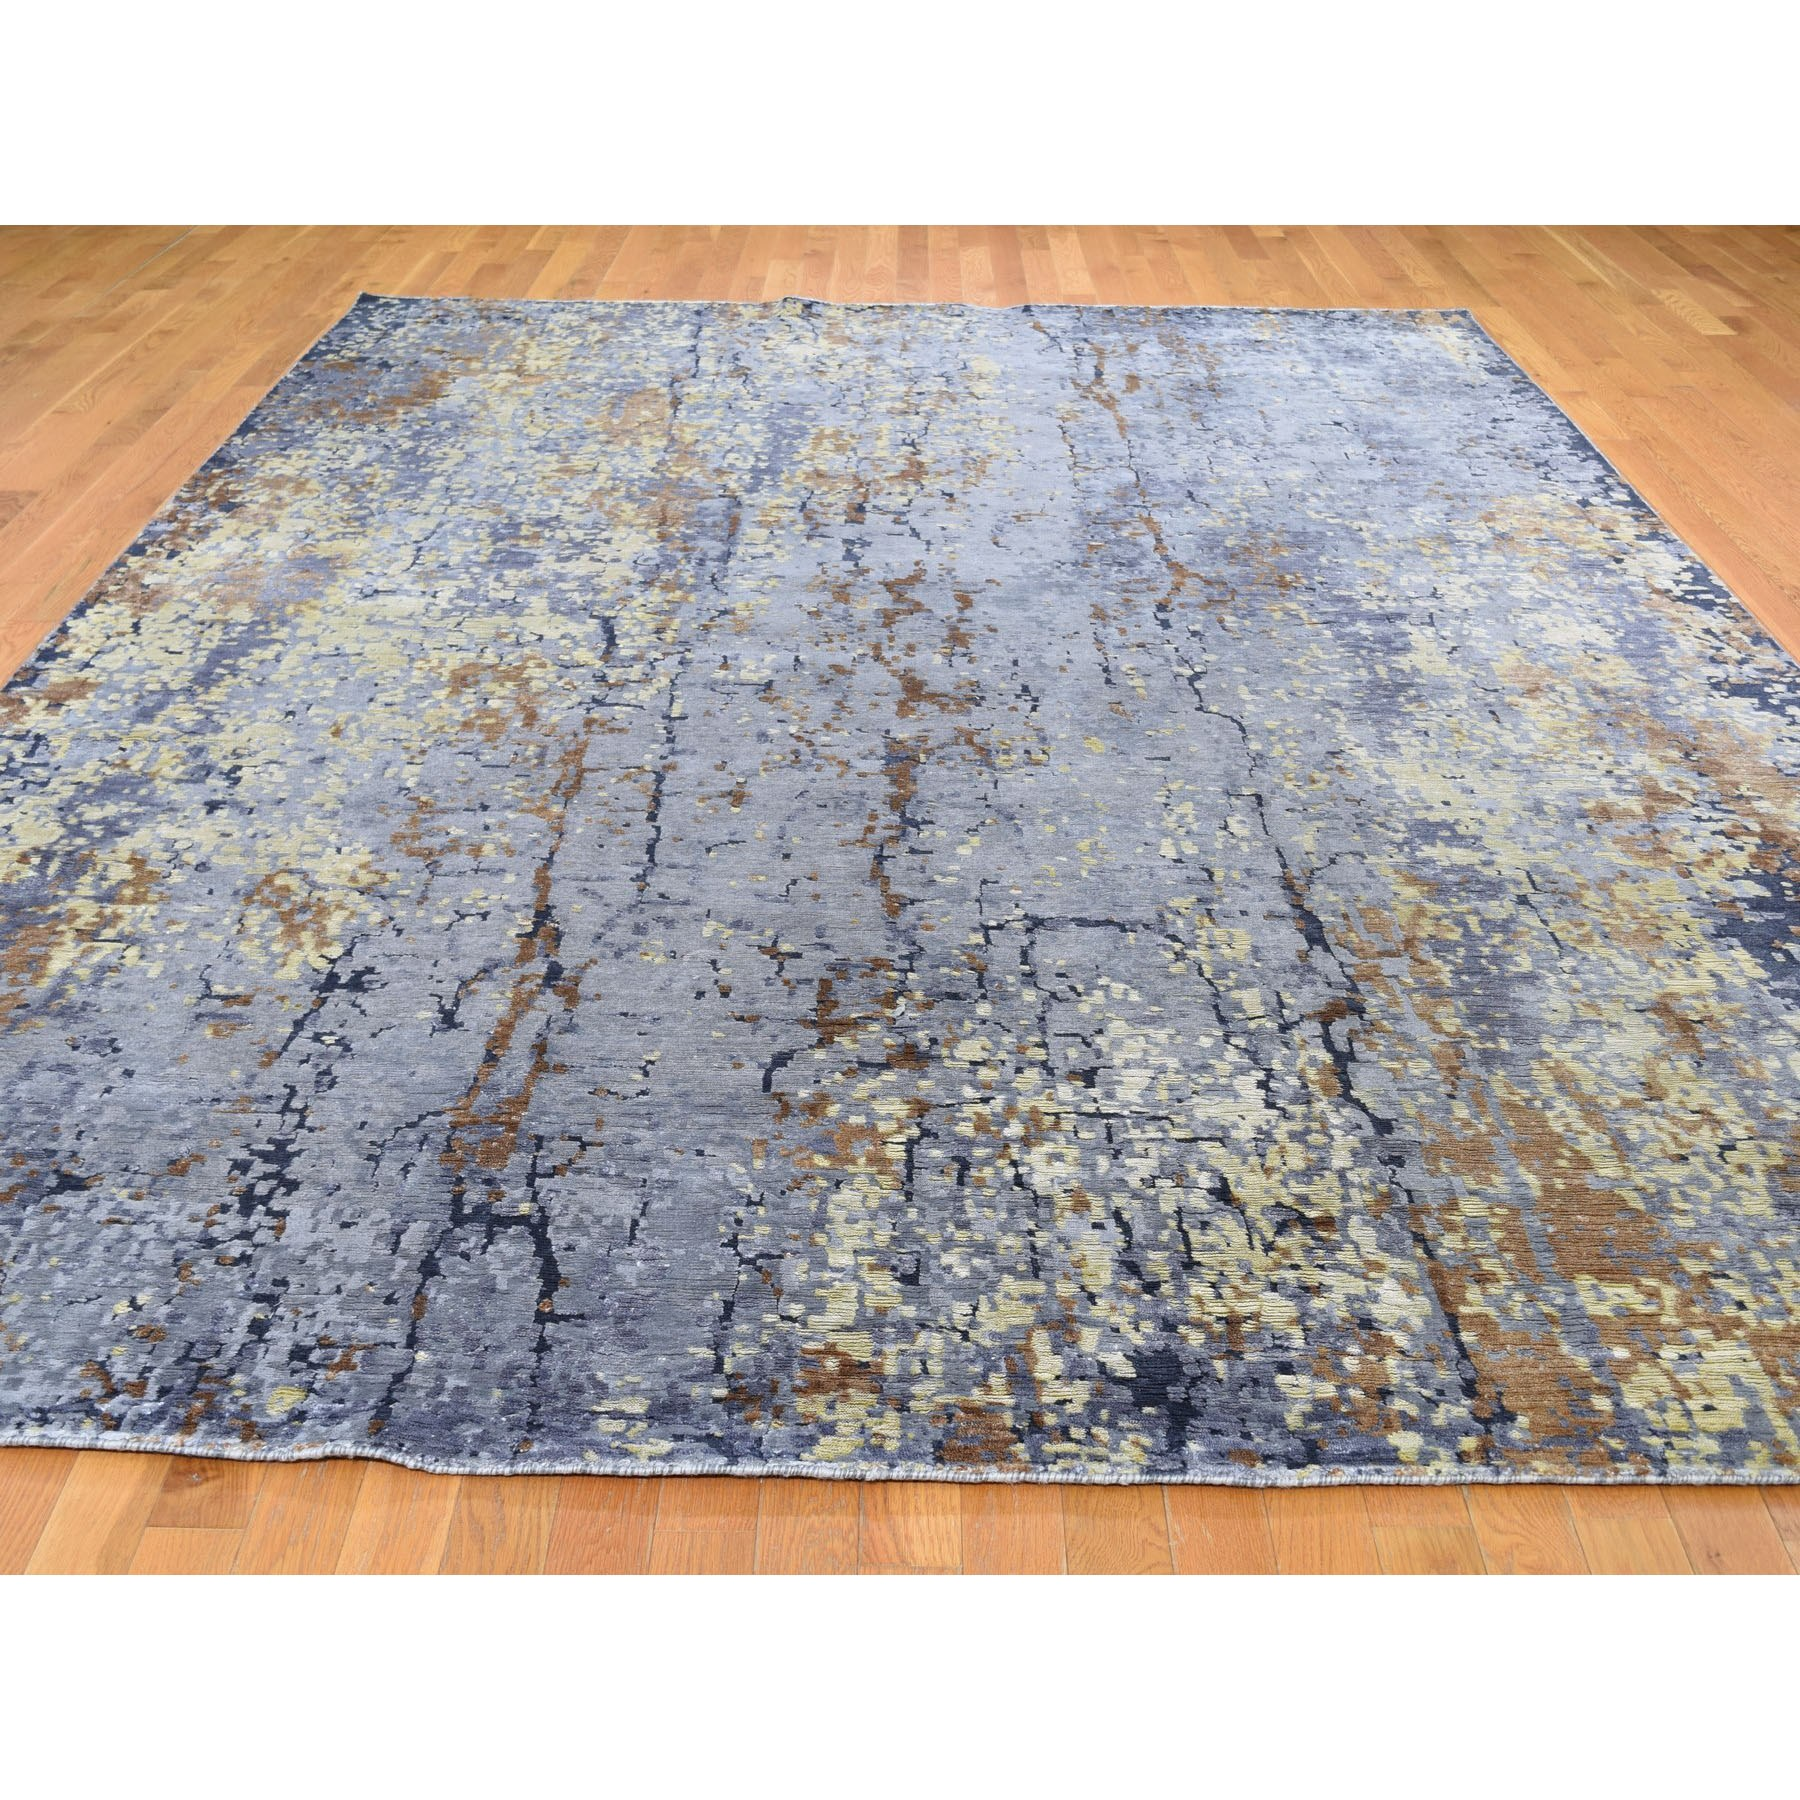 """8'10""""x12' Light BlueAbstract Design Wool and Silk Hi-Low Pile Hand Knotted Oriental Rug"""